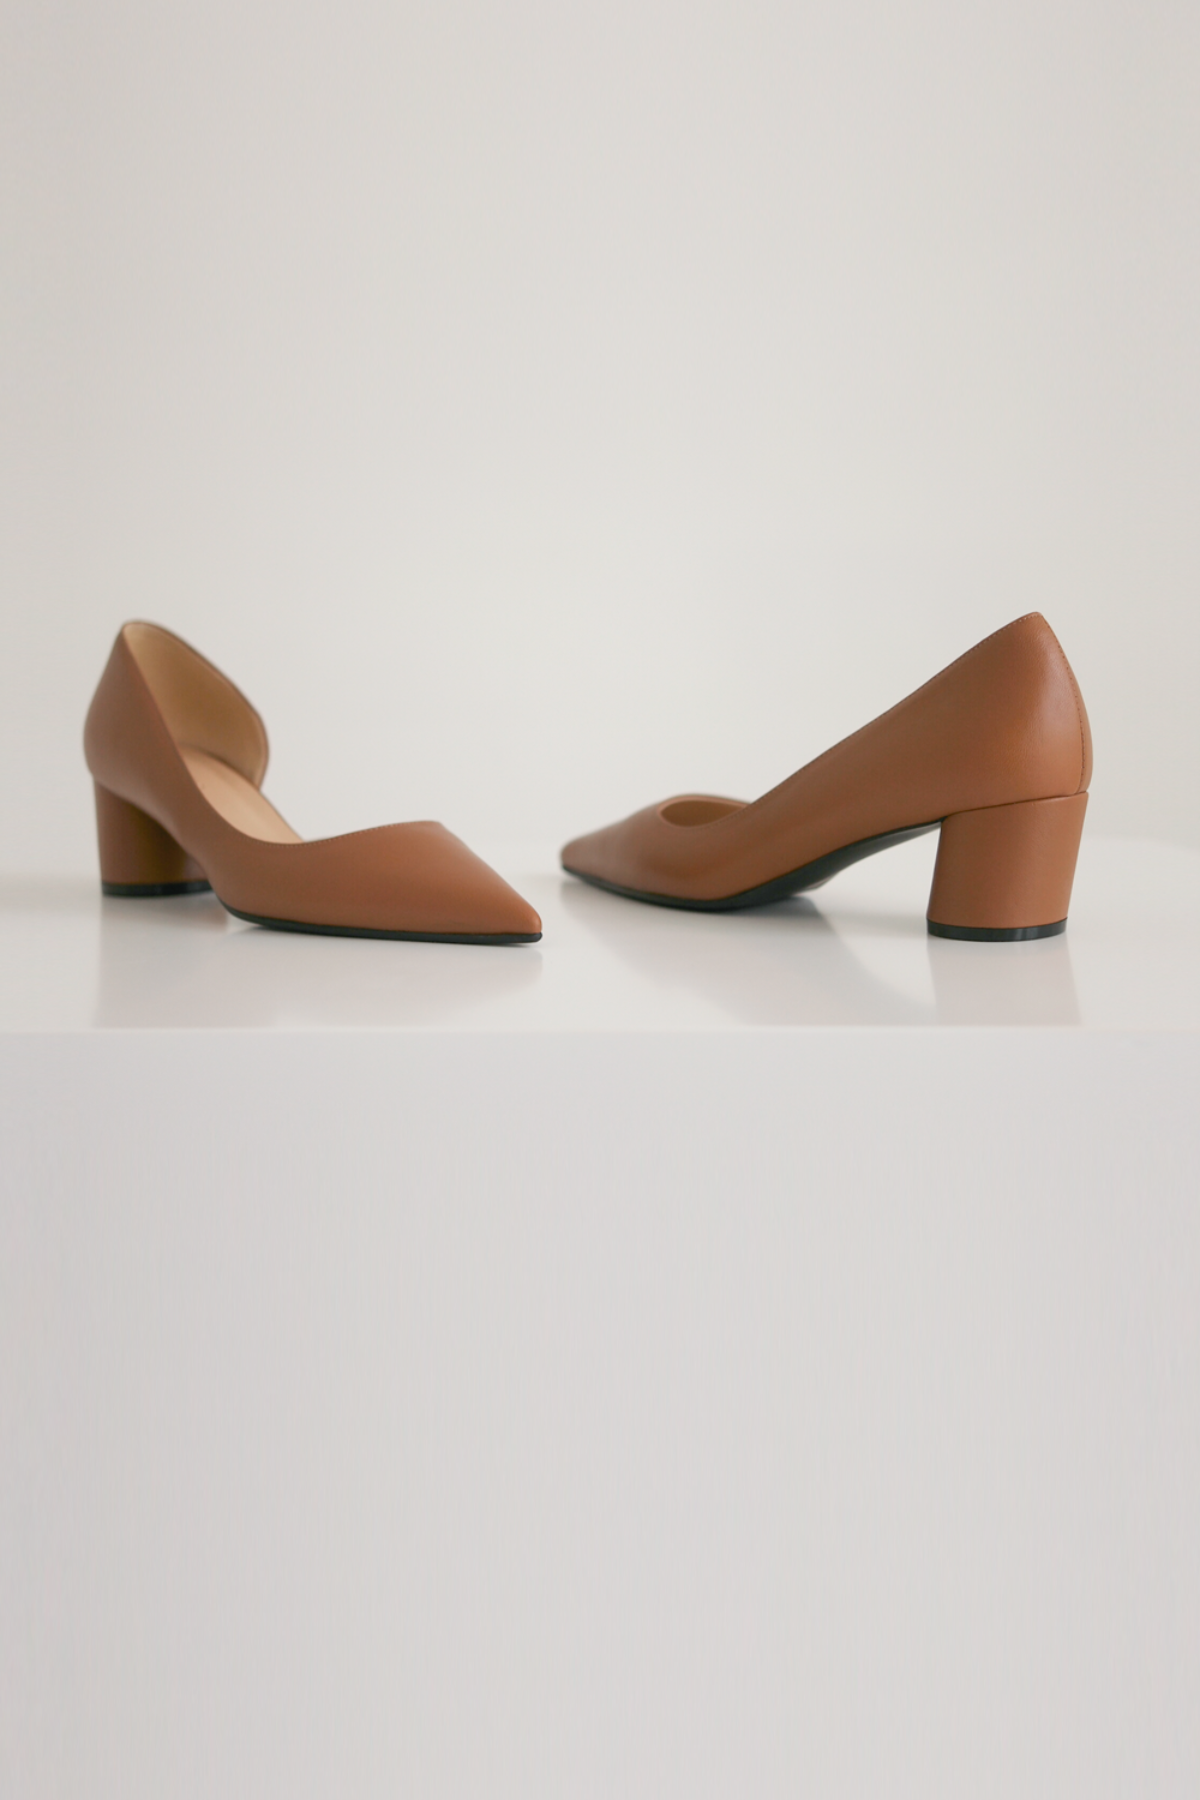 anthese Pin stiletto heel,camel